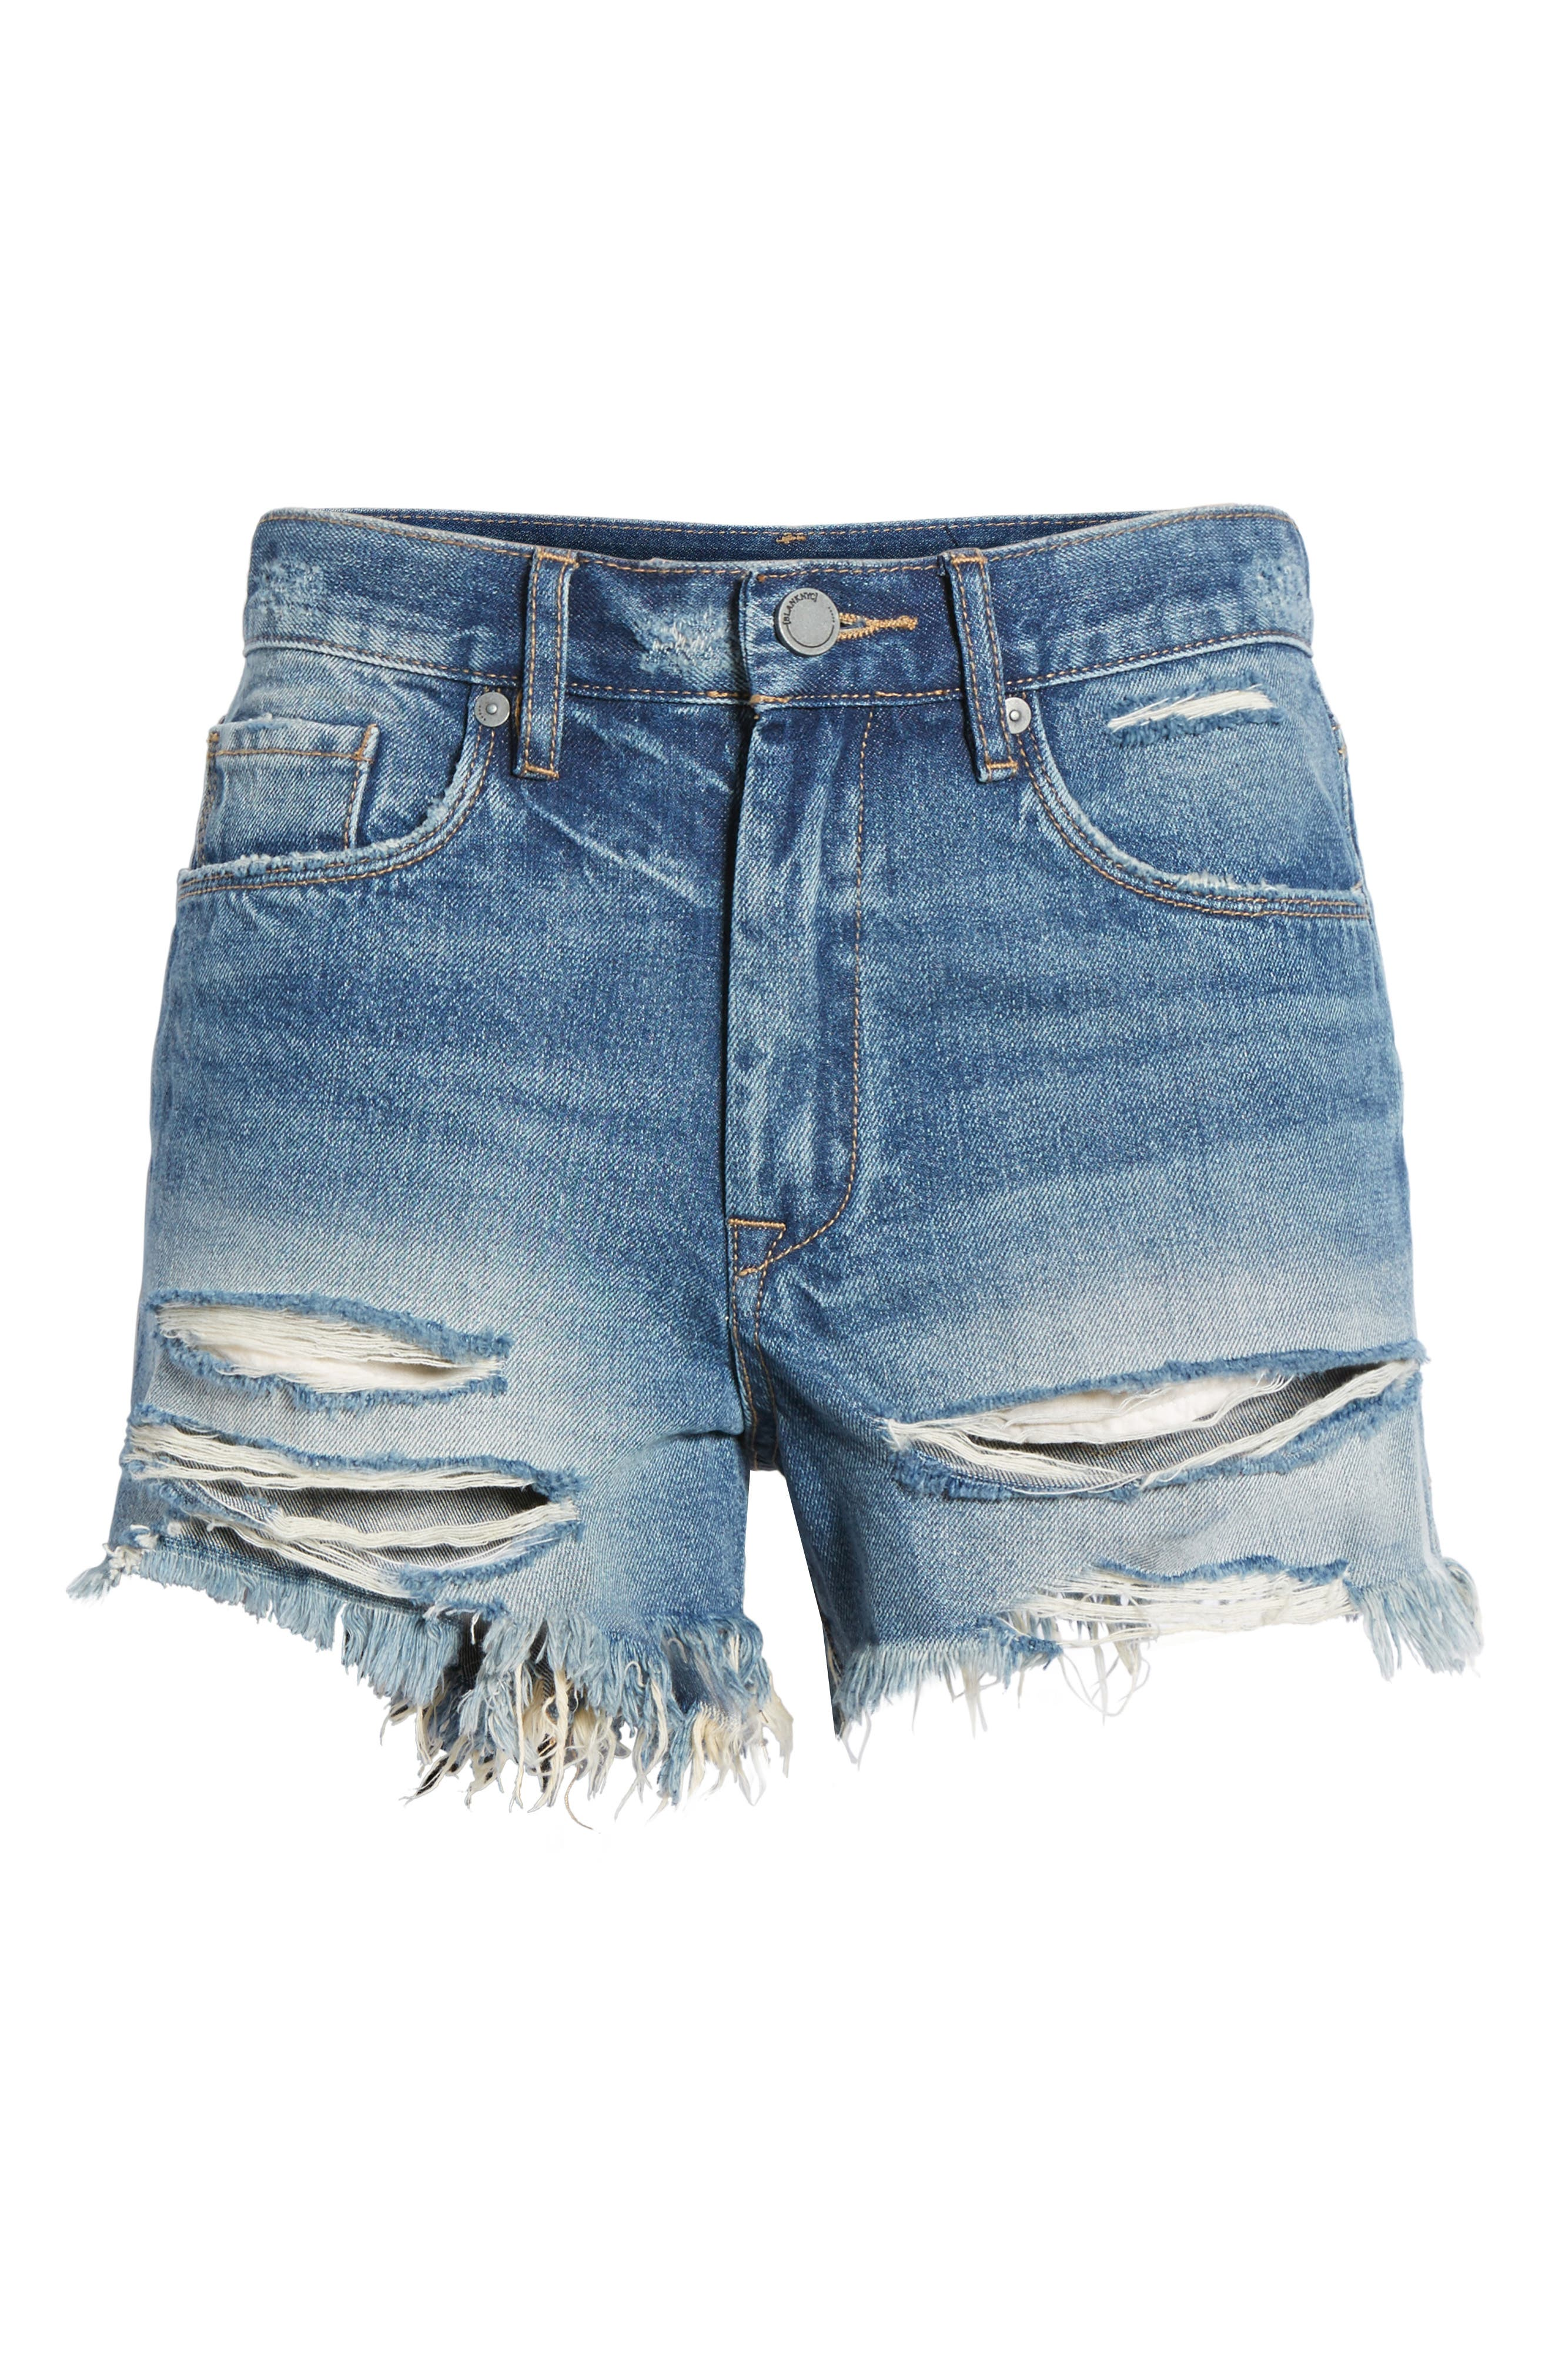 Pin-Up Distressed Denim Shorts,                             Alternate thumbnail 6, color,                             Poster Child